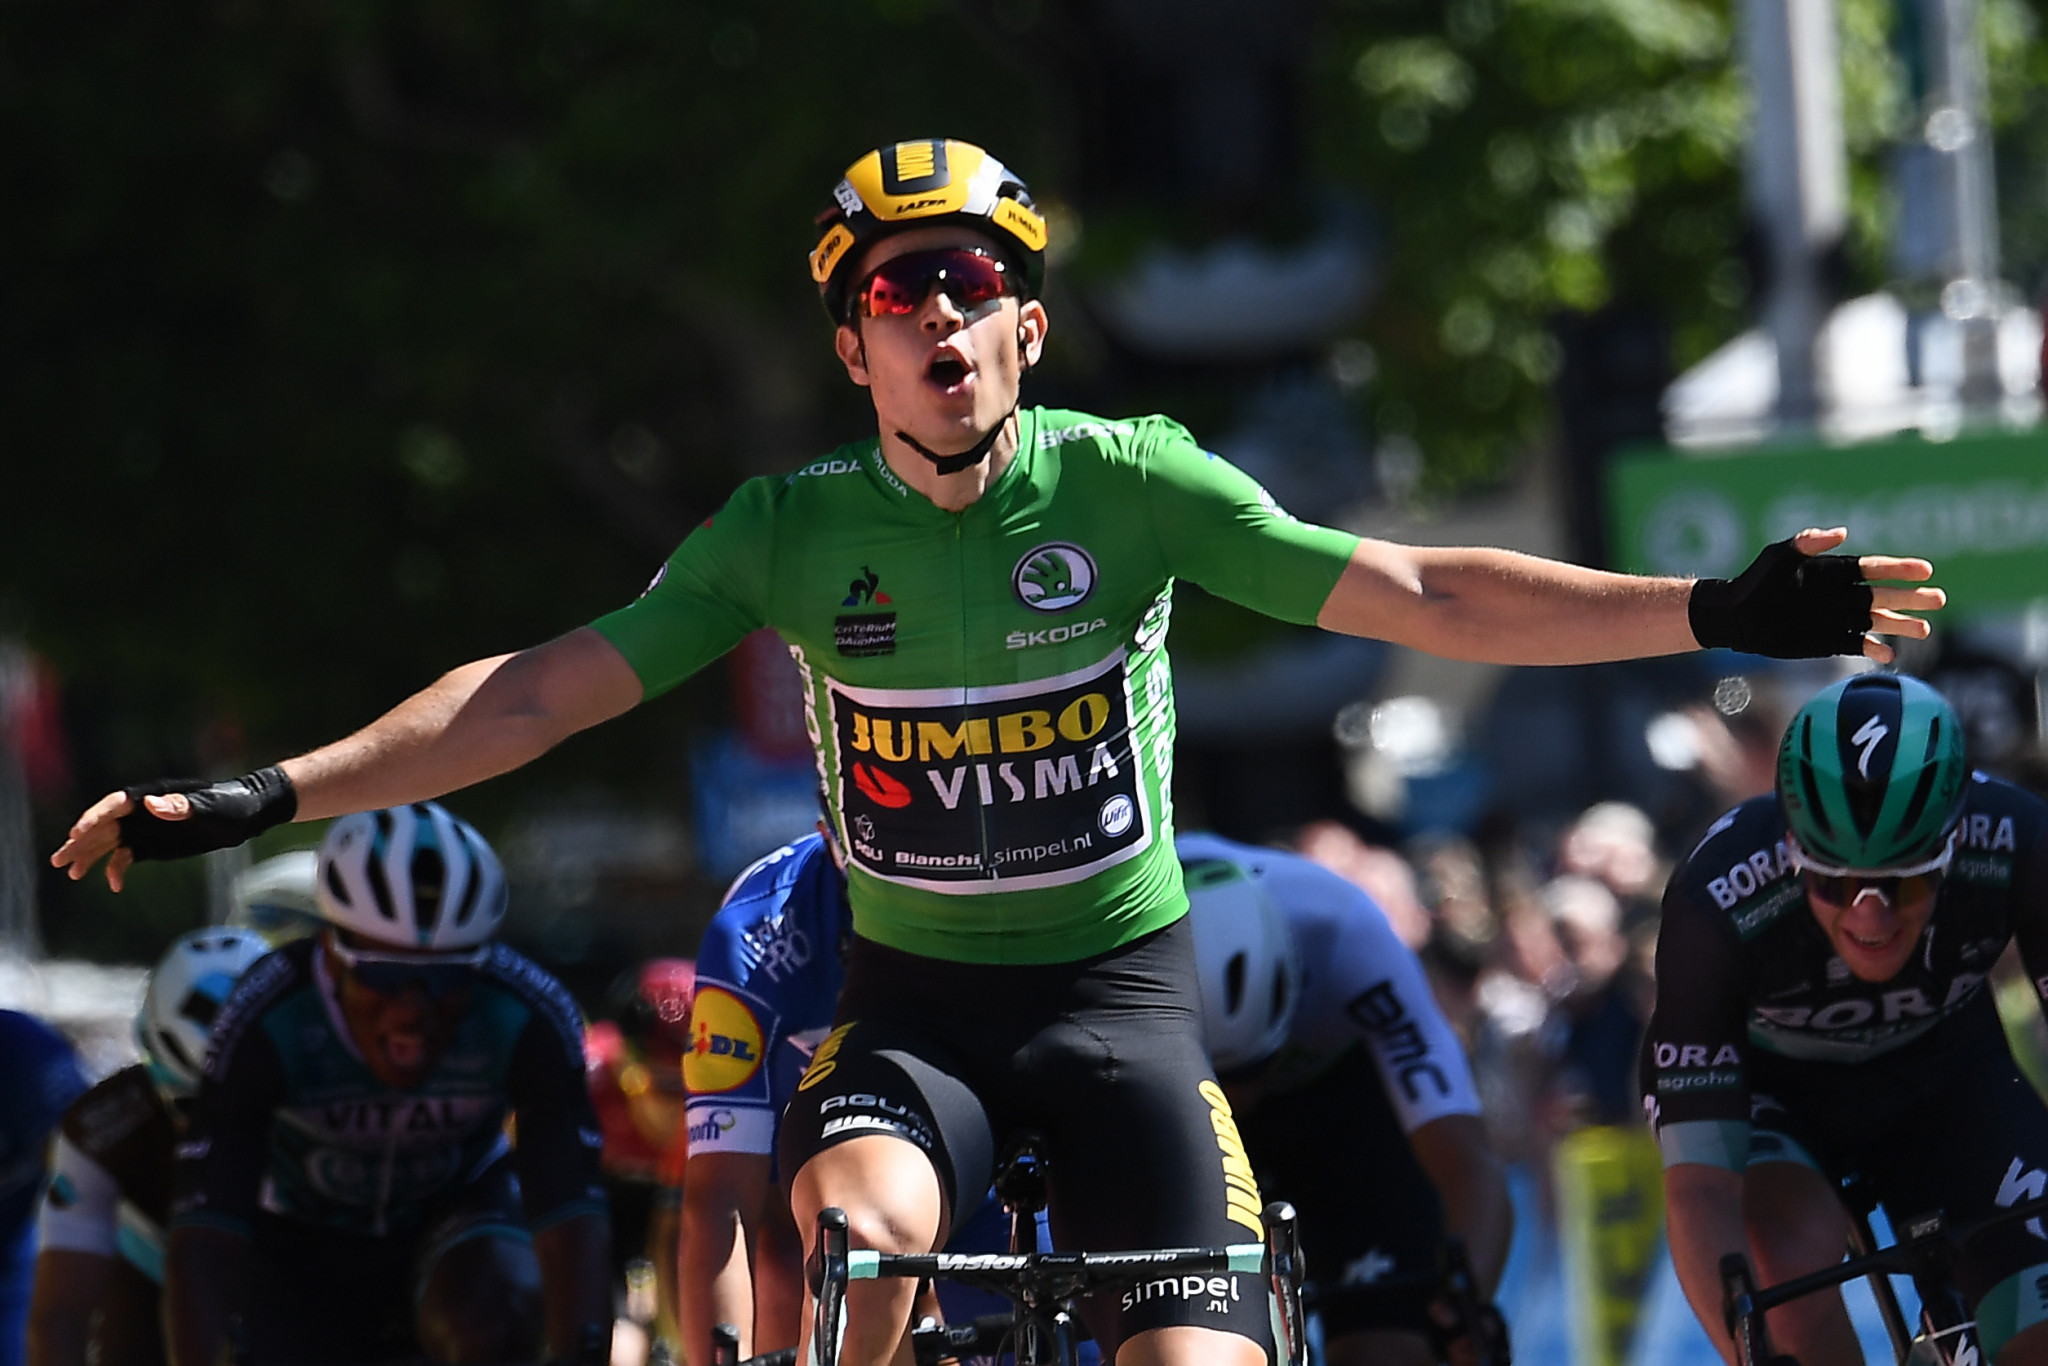 Belgium's Wout van Aert outdid hot favourite Sam Bennett of Ireland in a thrilling bunch sprint to make it two successive stage wins at the Critérium du Dauphiné ©Getty Images